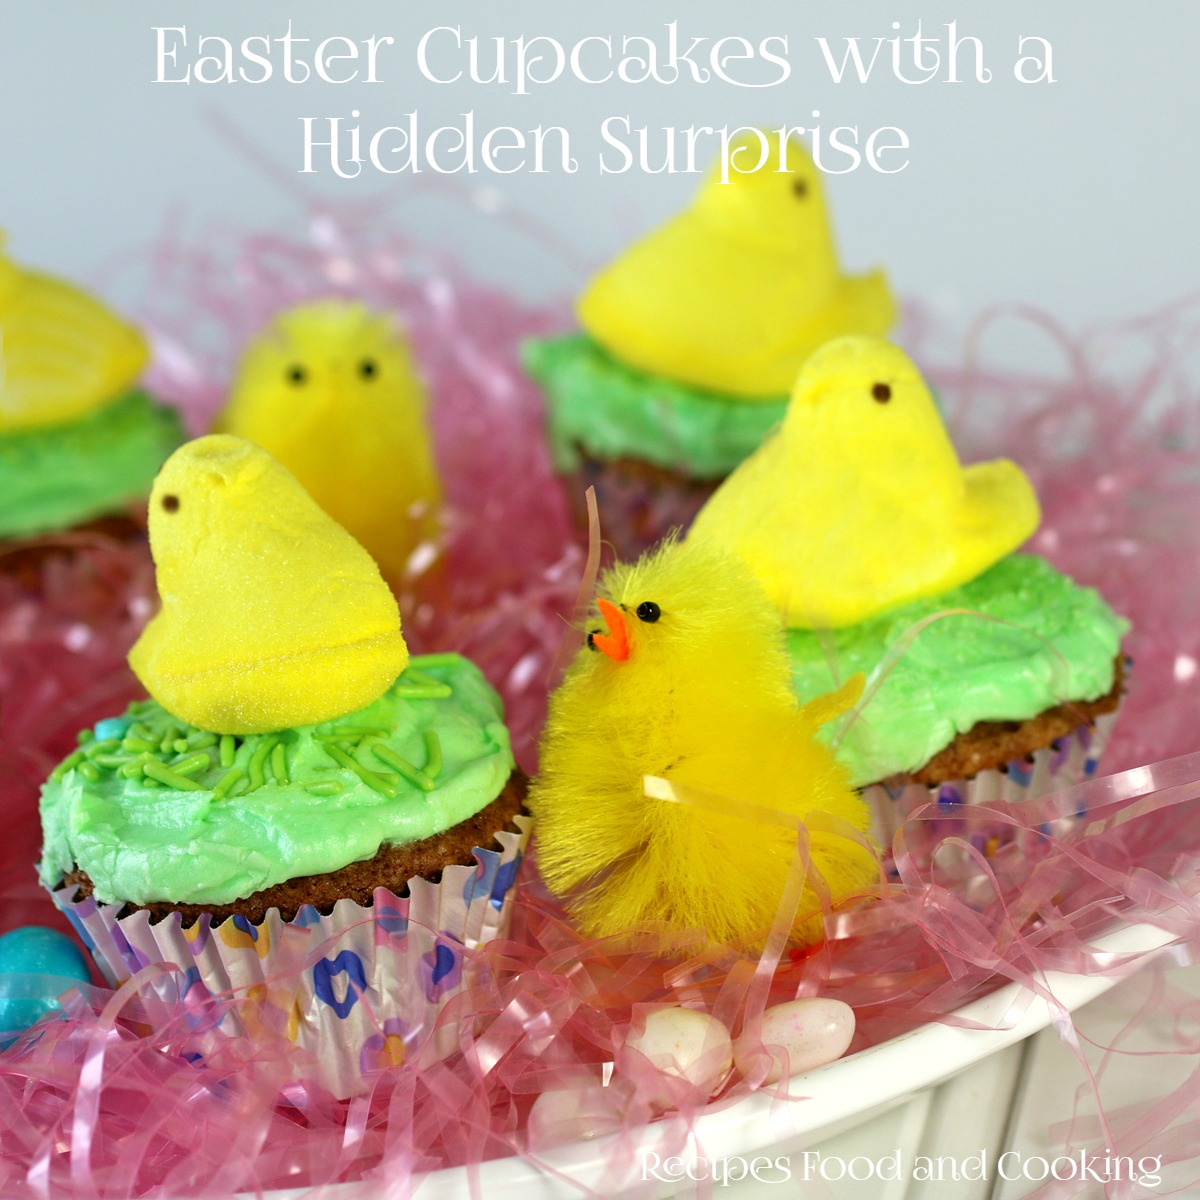 Easter Cupcakes with a Hidden Surprise